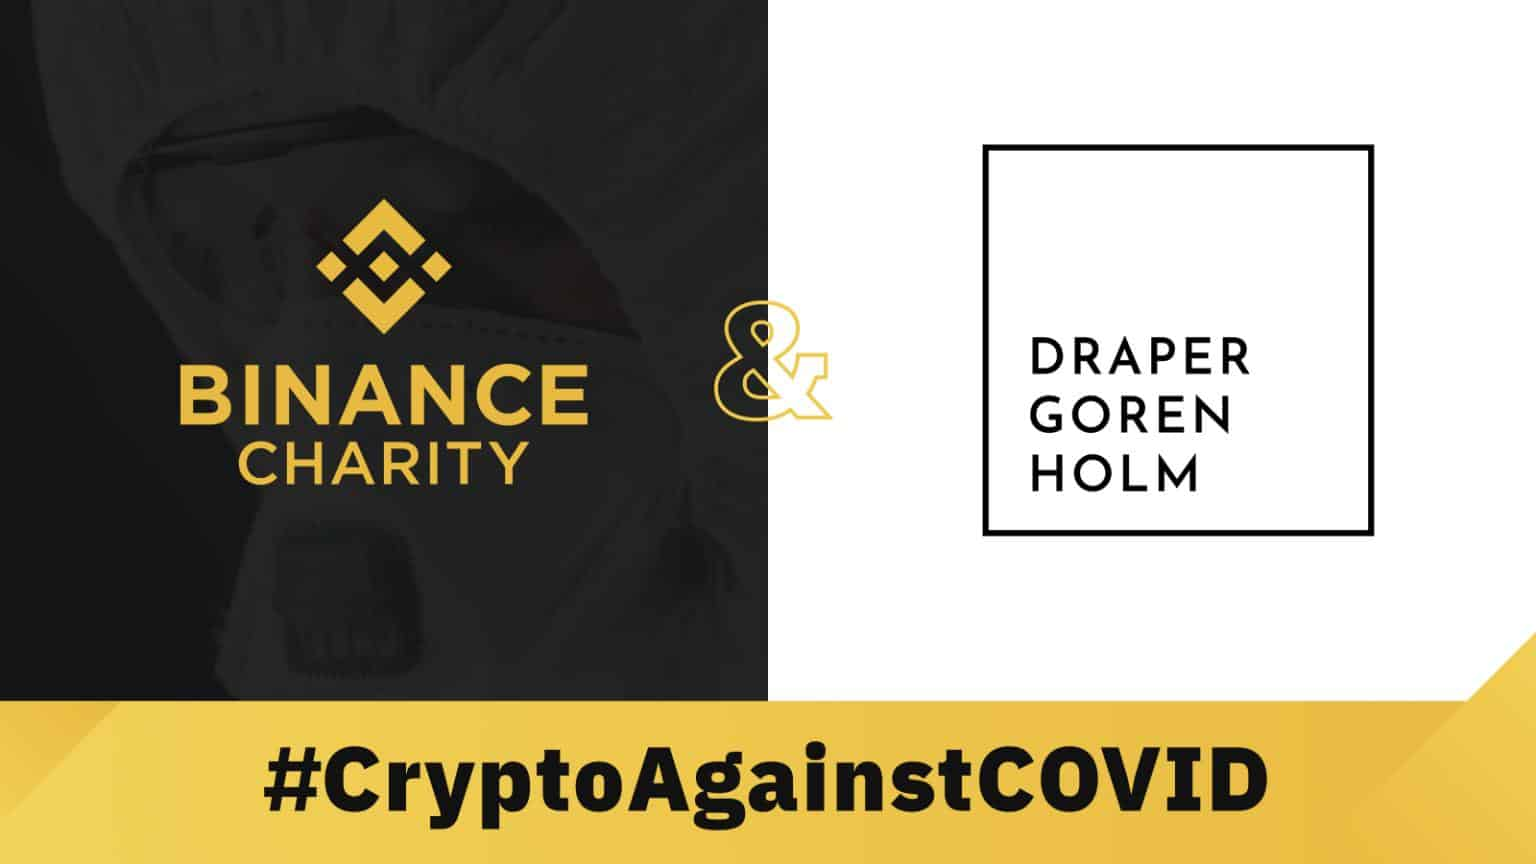 Draper Goren Holm and Binance Charity Foundation